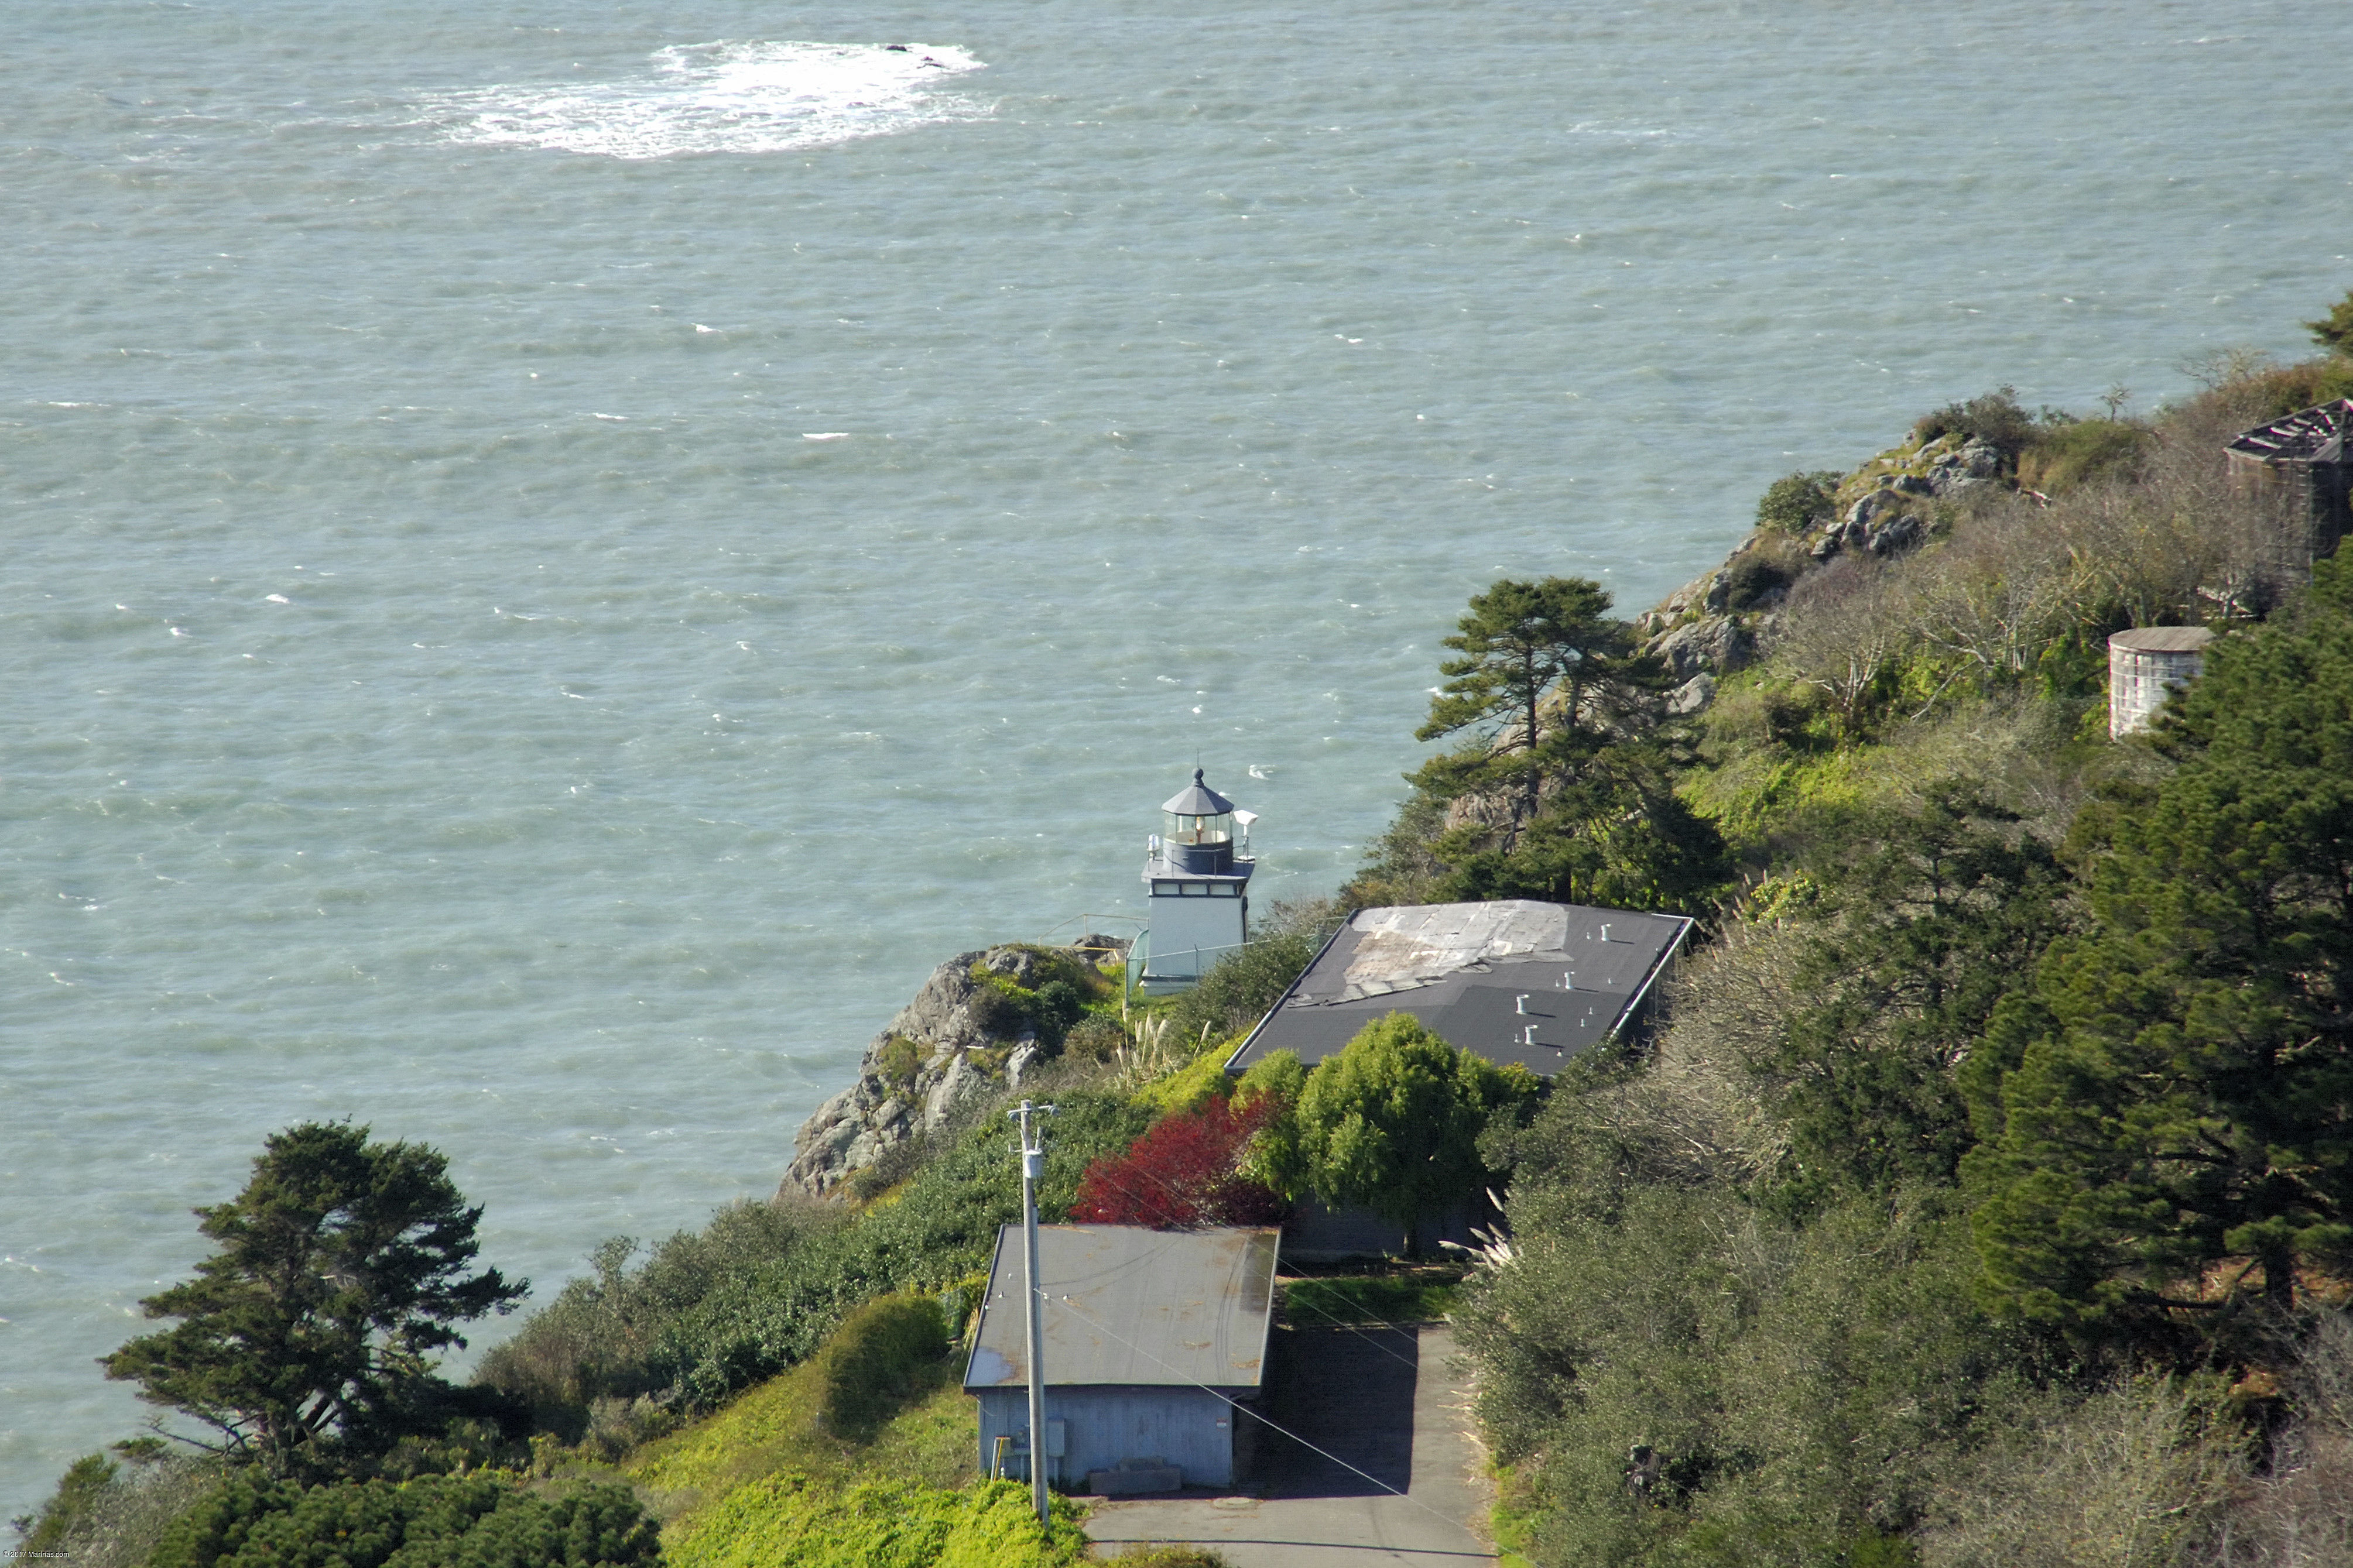 Trinidad Head Lighthouse in CA, United States - lighthouse